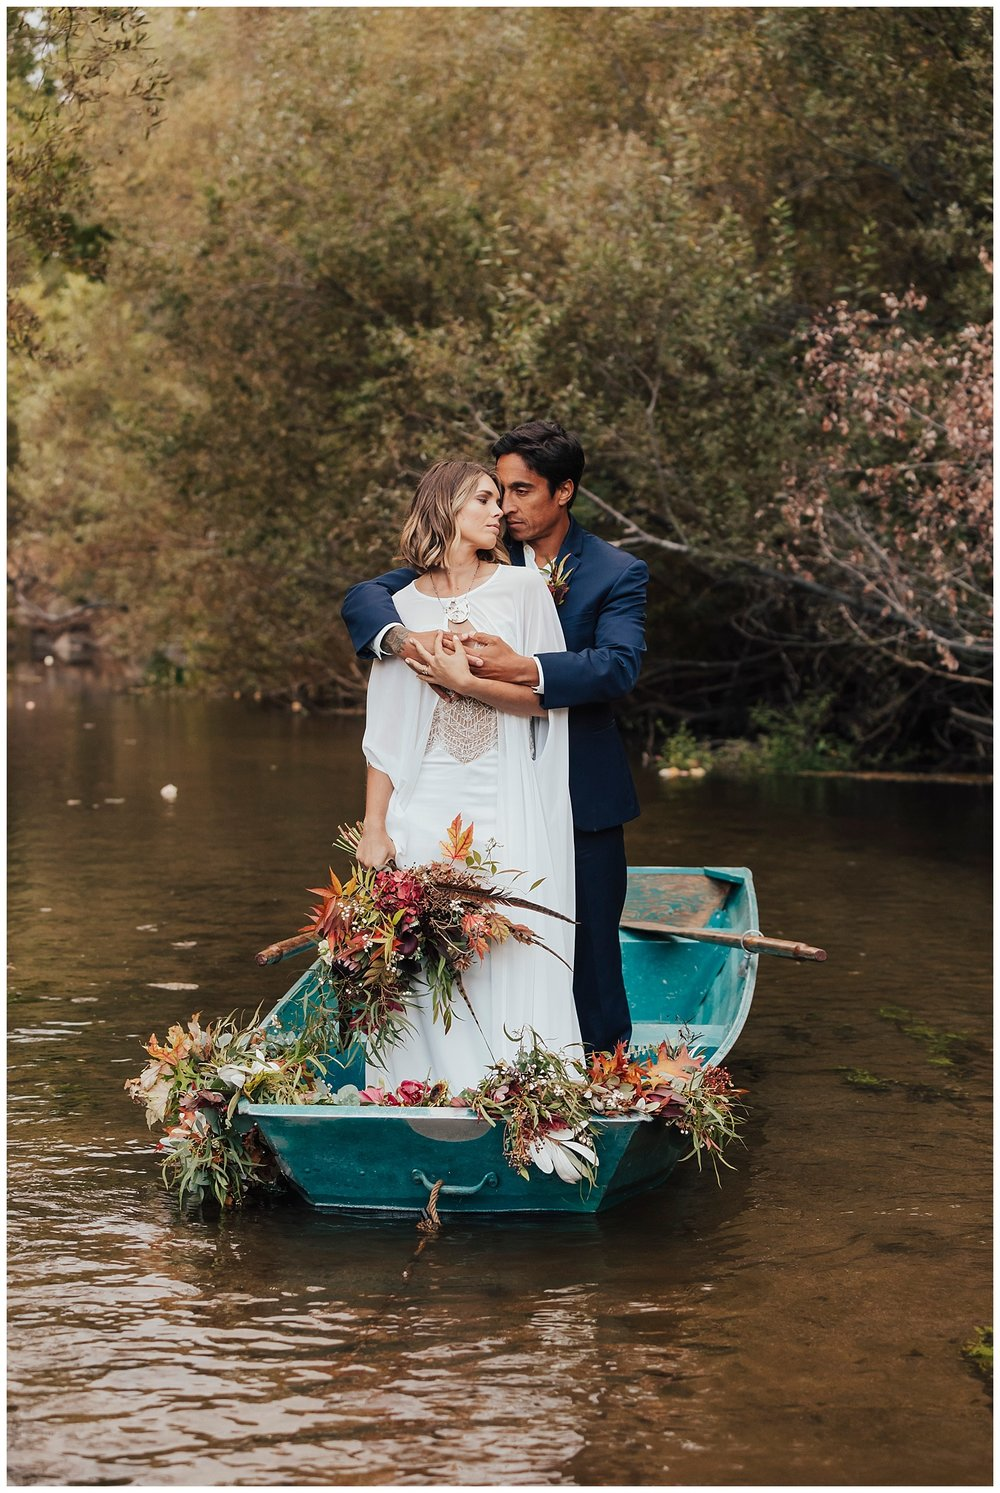 carol oliva photography Carmel river bridal